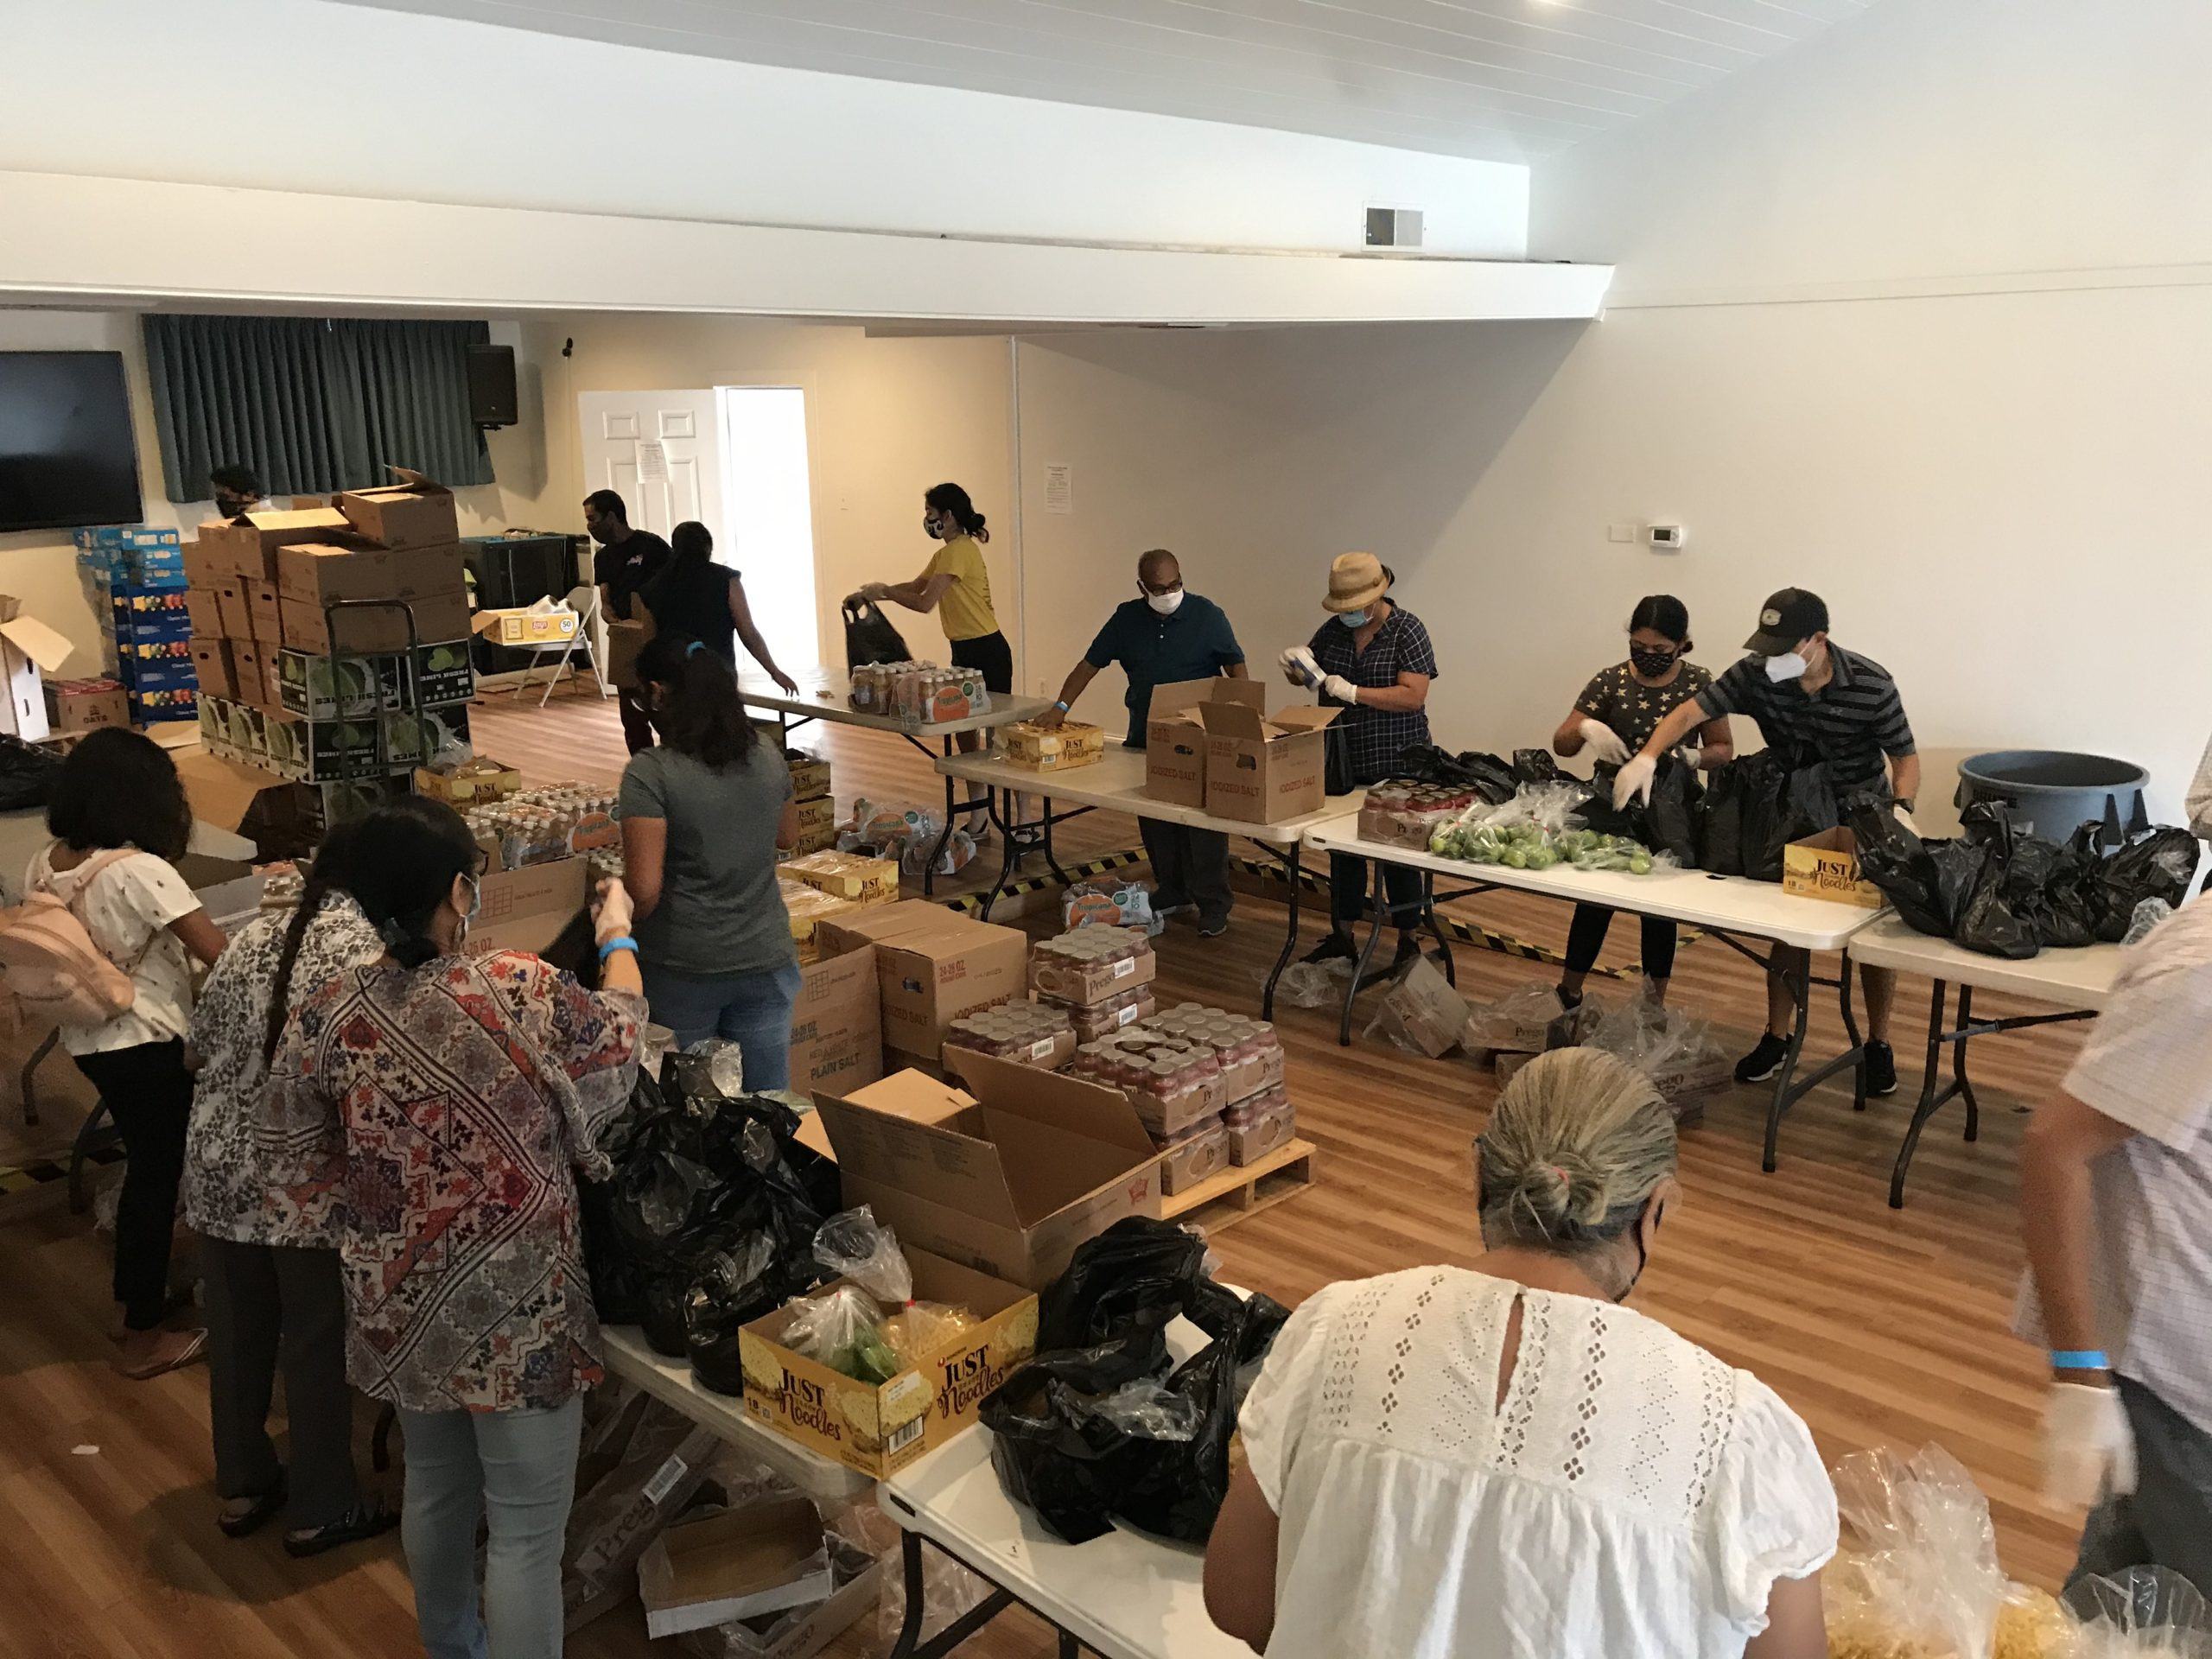 From May 10, 2020, 30 volunteers have created 400 grocery bags every Sunday. These bags consist of 6 items ranging from rice, beans, fruits and vegetables, oil, breakfast goods, canned goods, and juice.